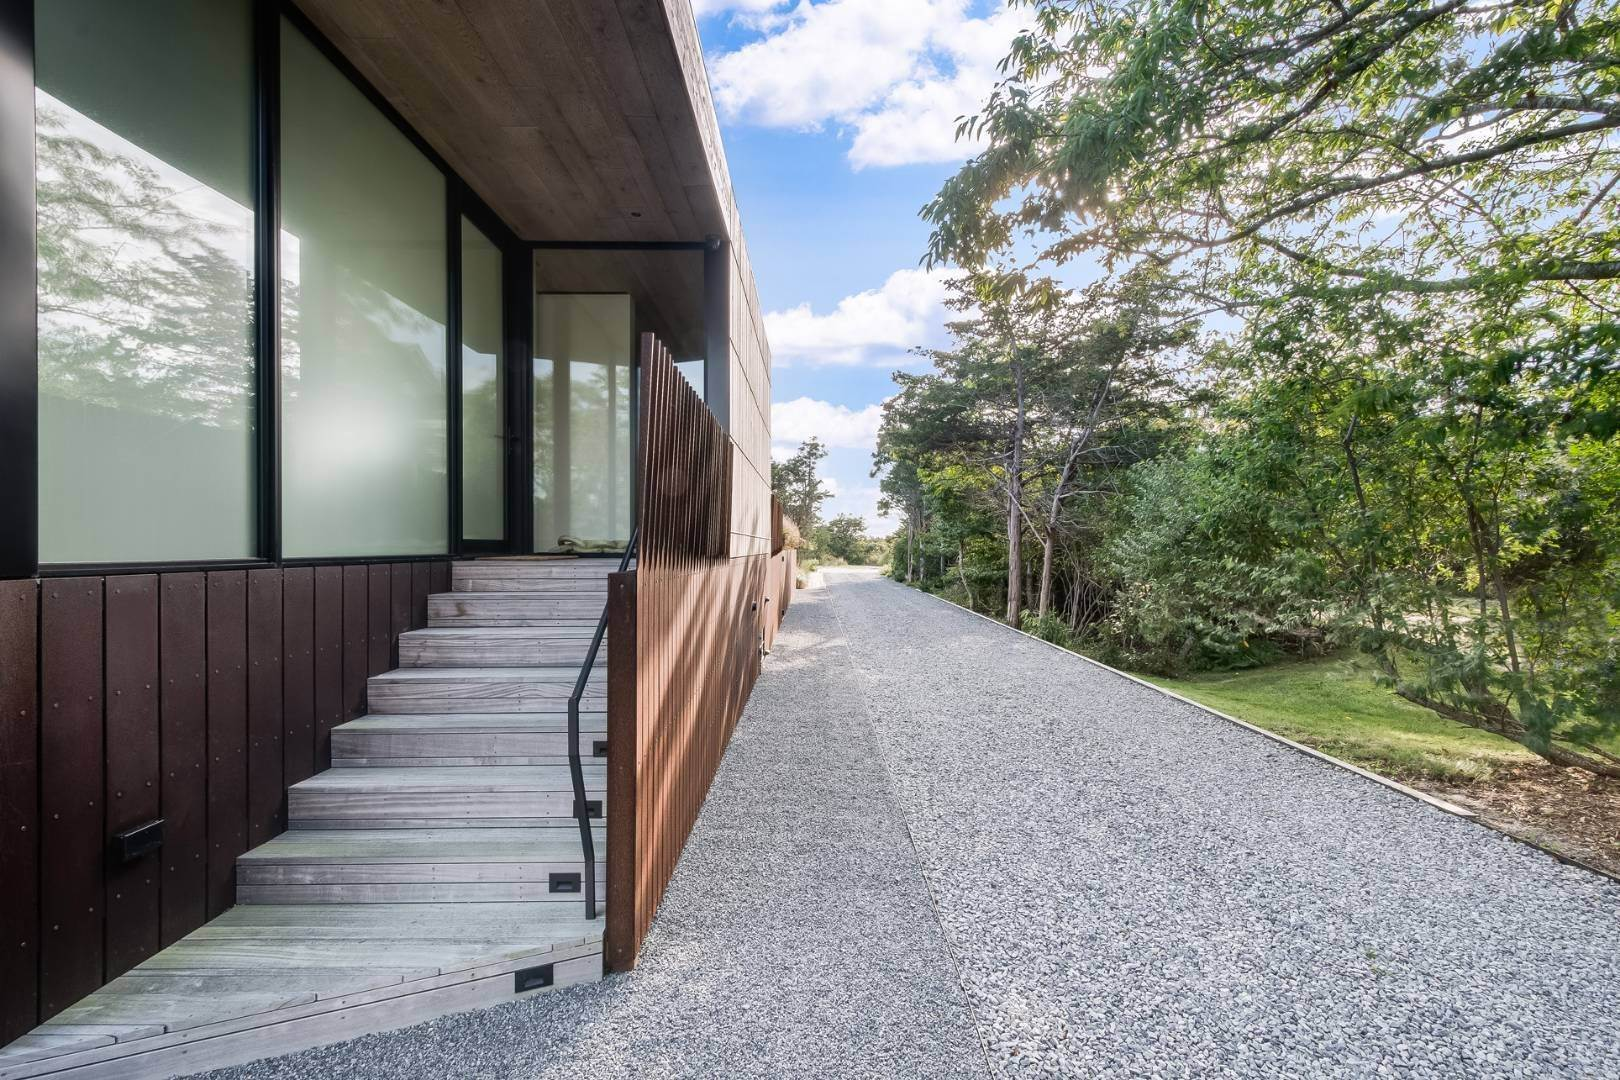 22. Single Family Home for Sale at Near Ocean Bates Masi Modern, Amagansett 159 Atlantic Avenue, Amagansett, NY 11930